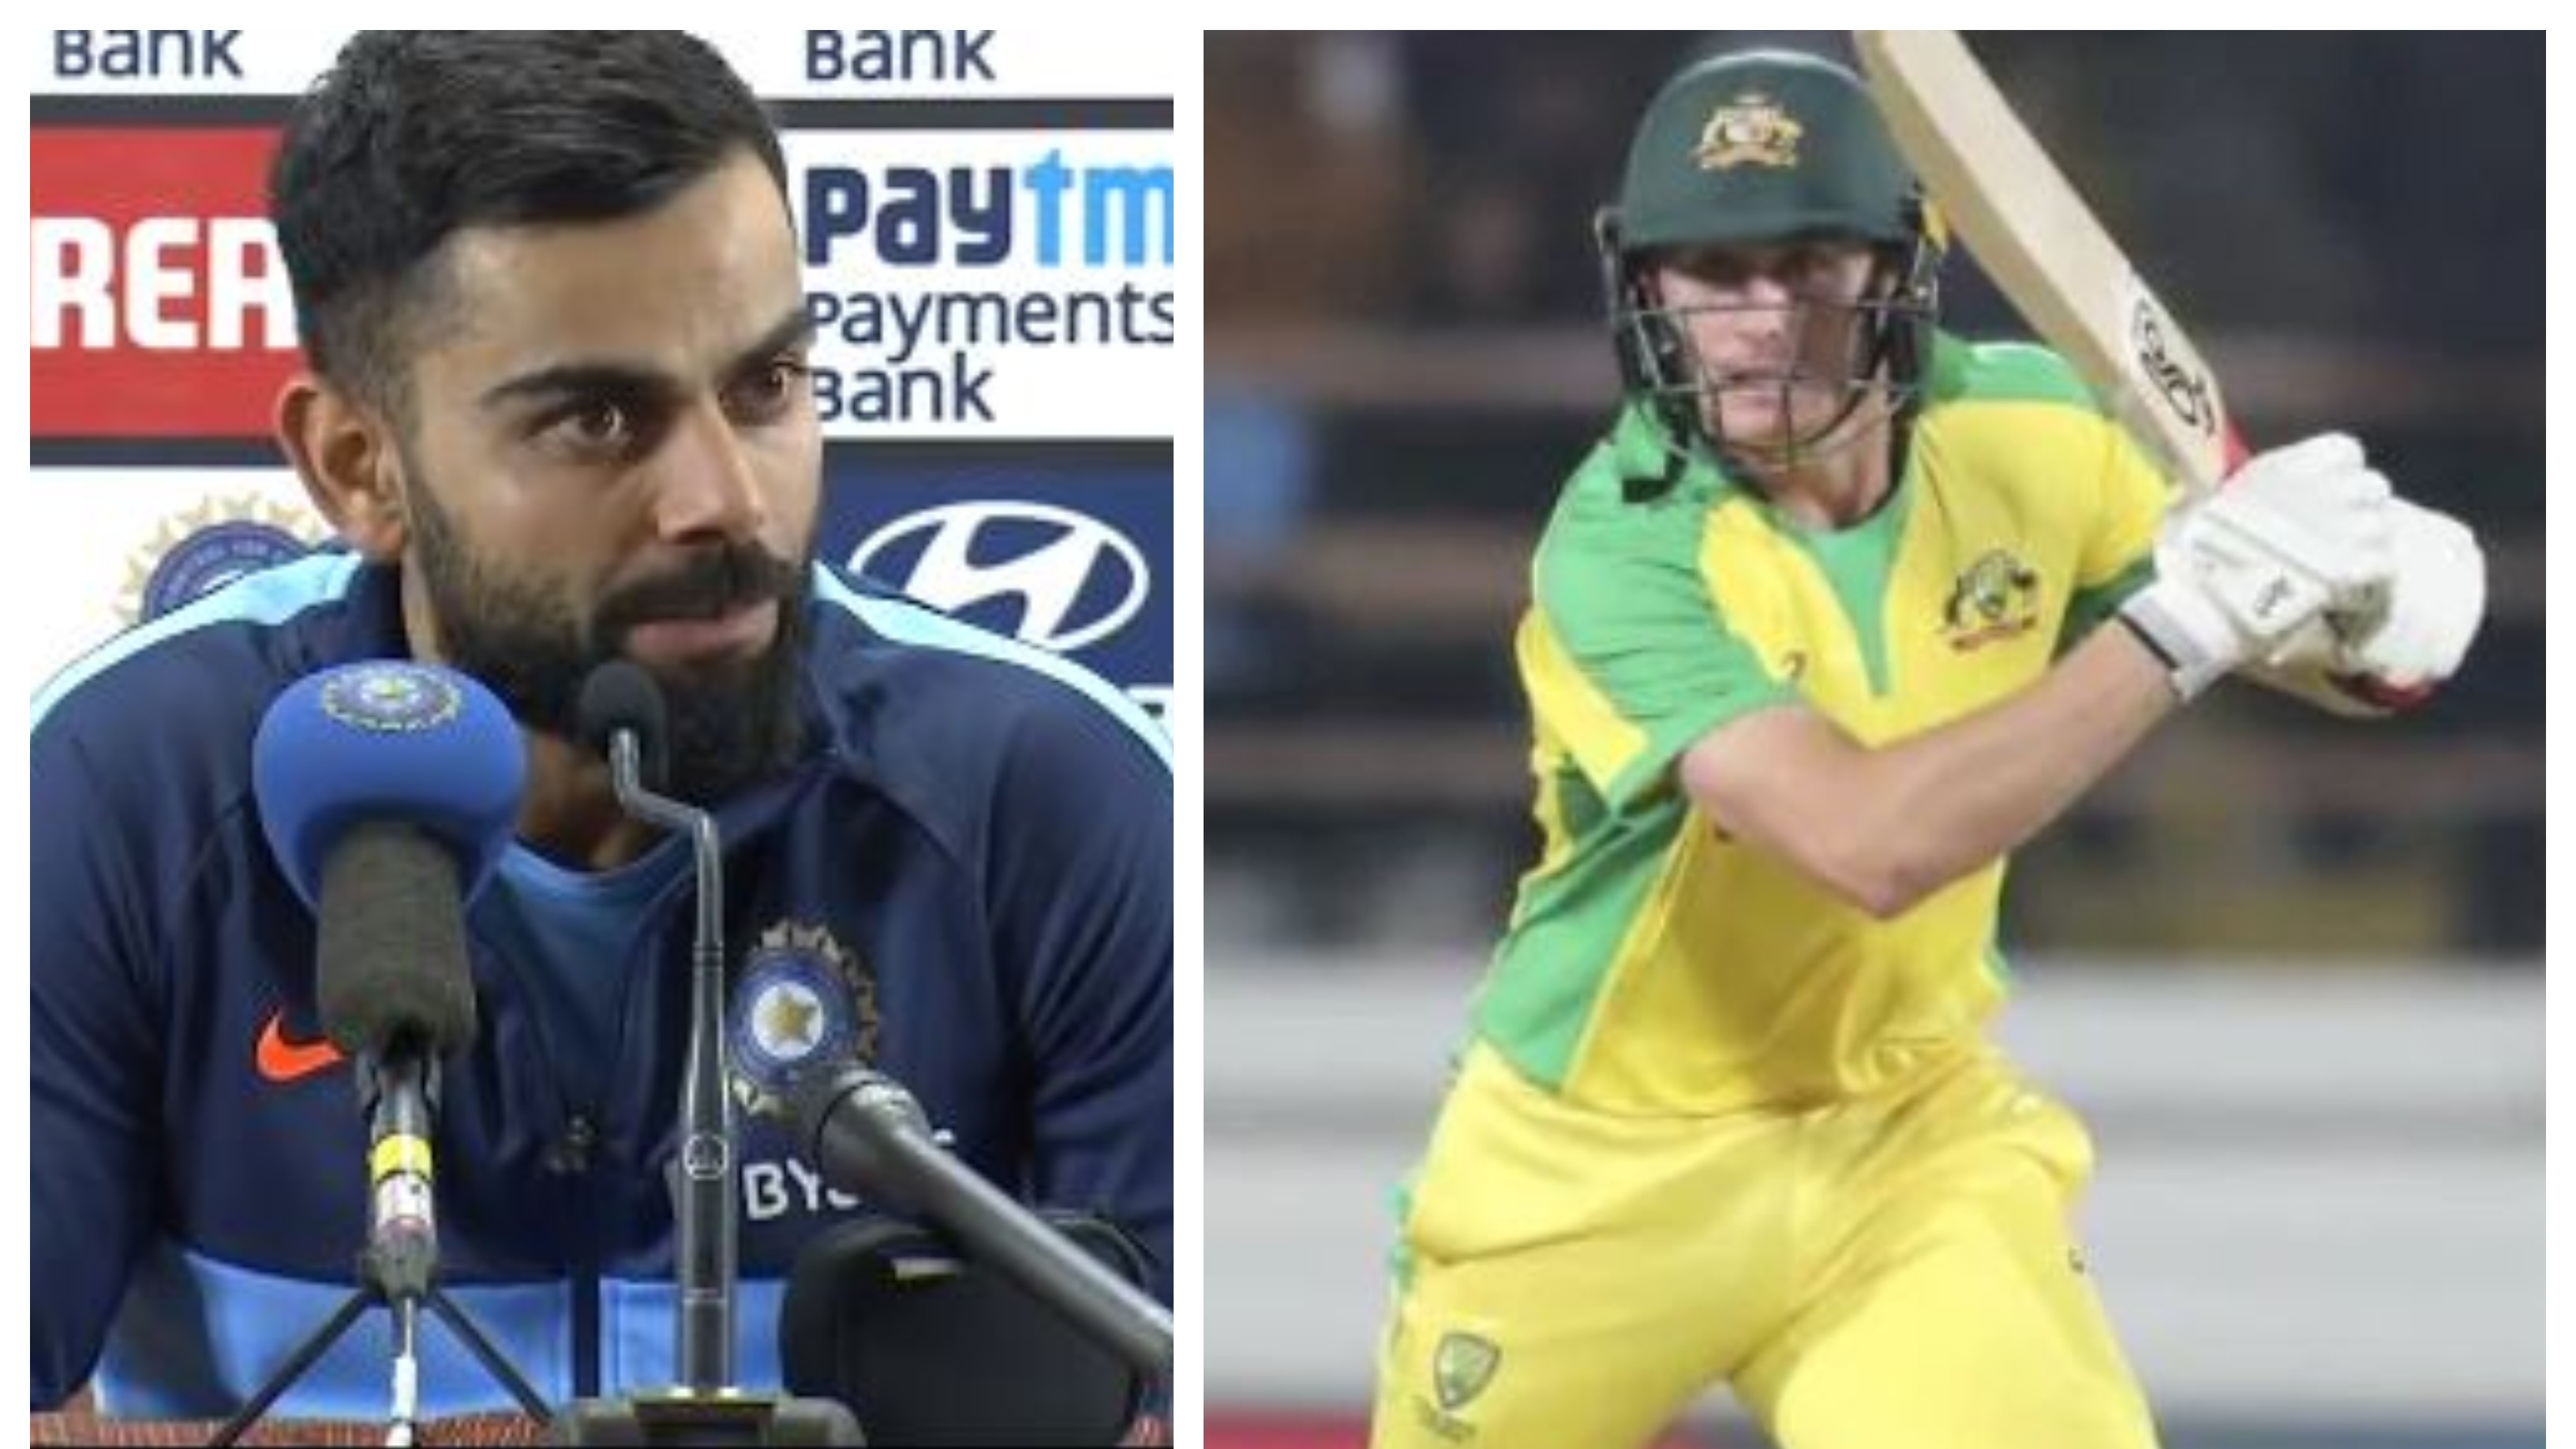 IND v AUS 2020: WATCH - Kohli foresees one of the world's best batsmen in Labuschagne